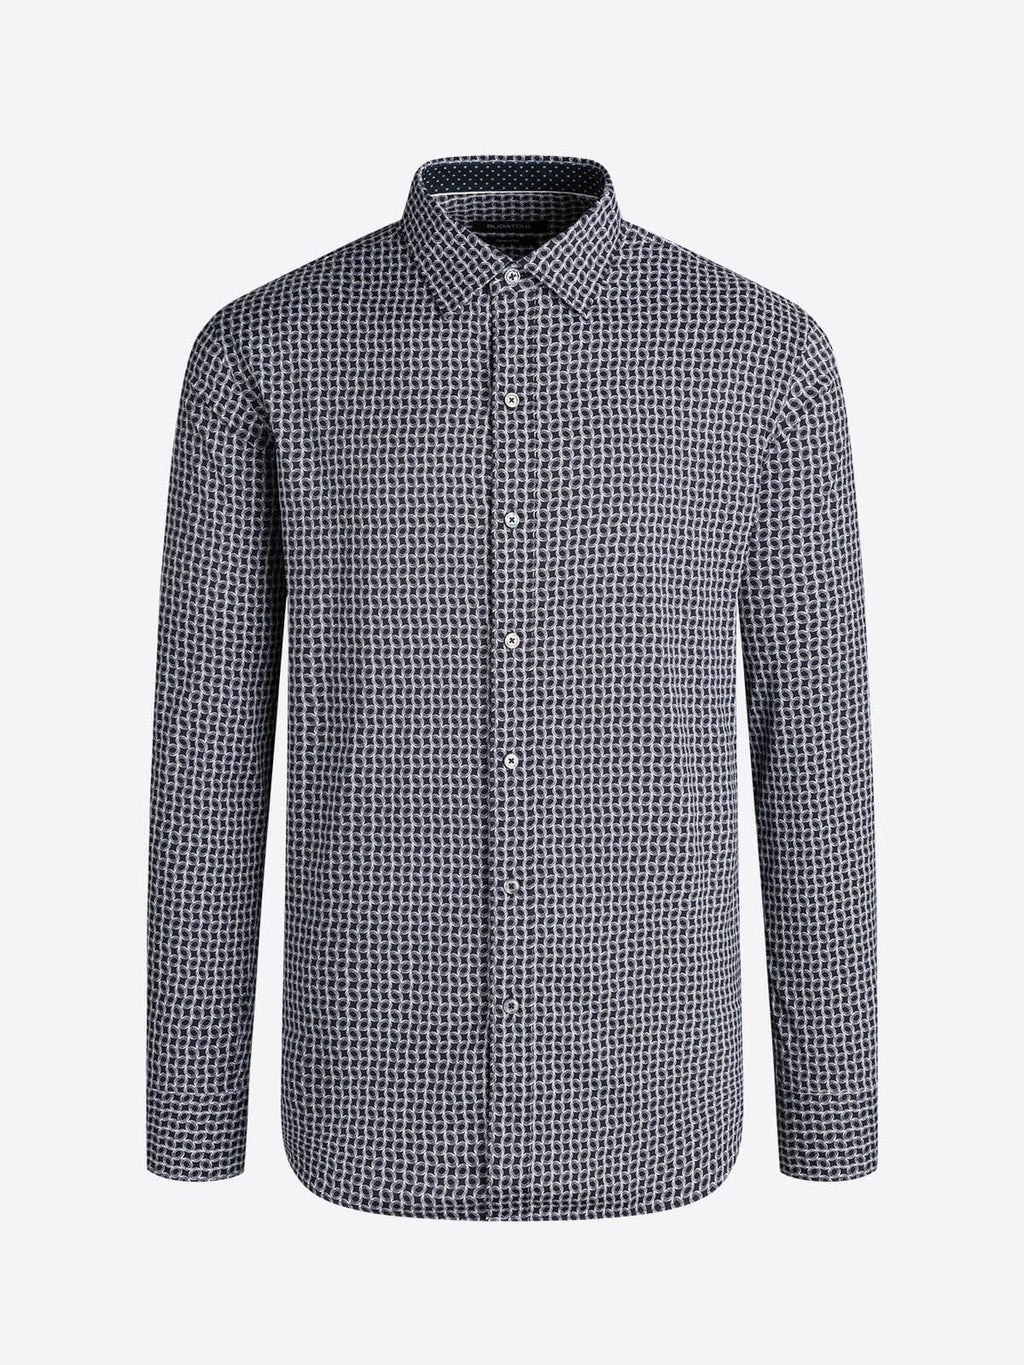 Bugatchi - Shaped Fit - Performance - Dress Shirt Caviar